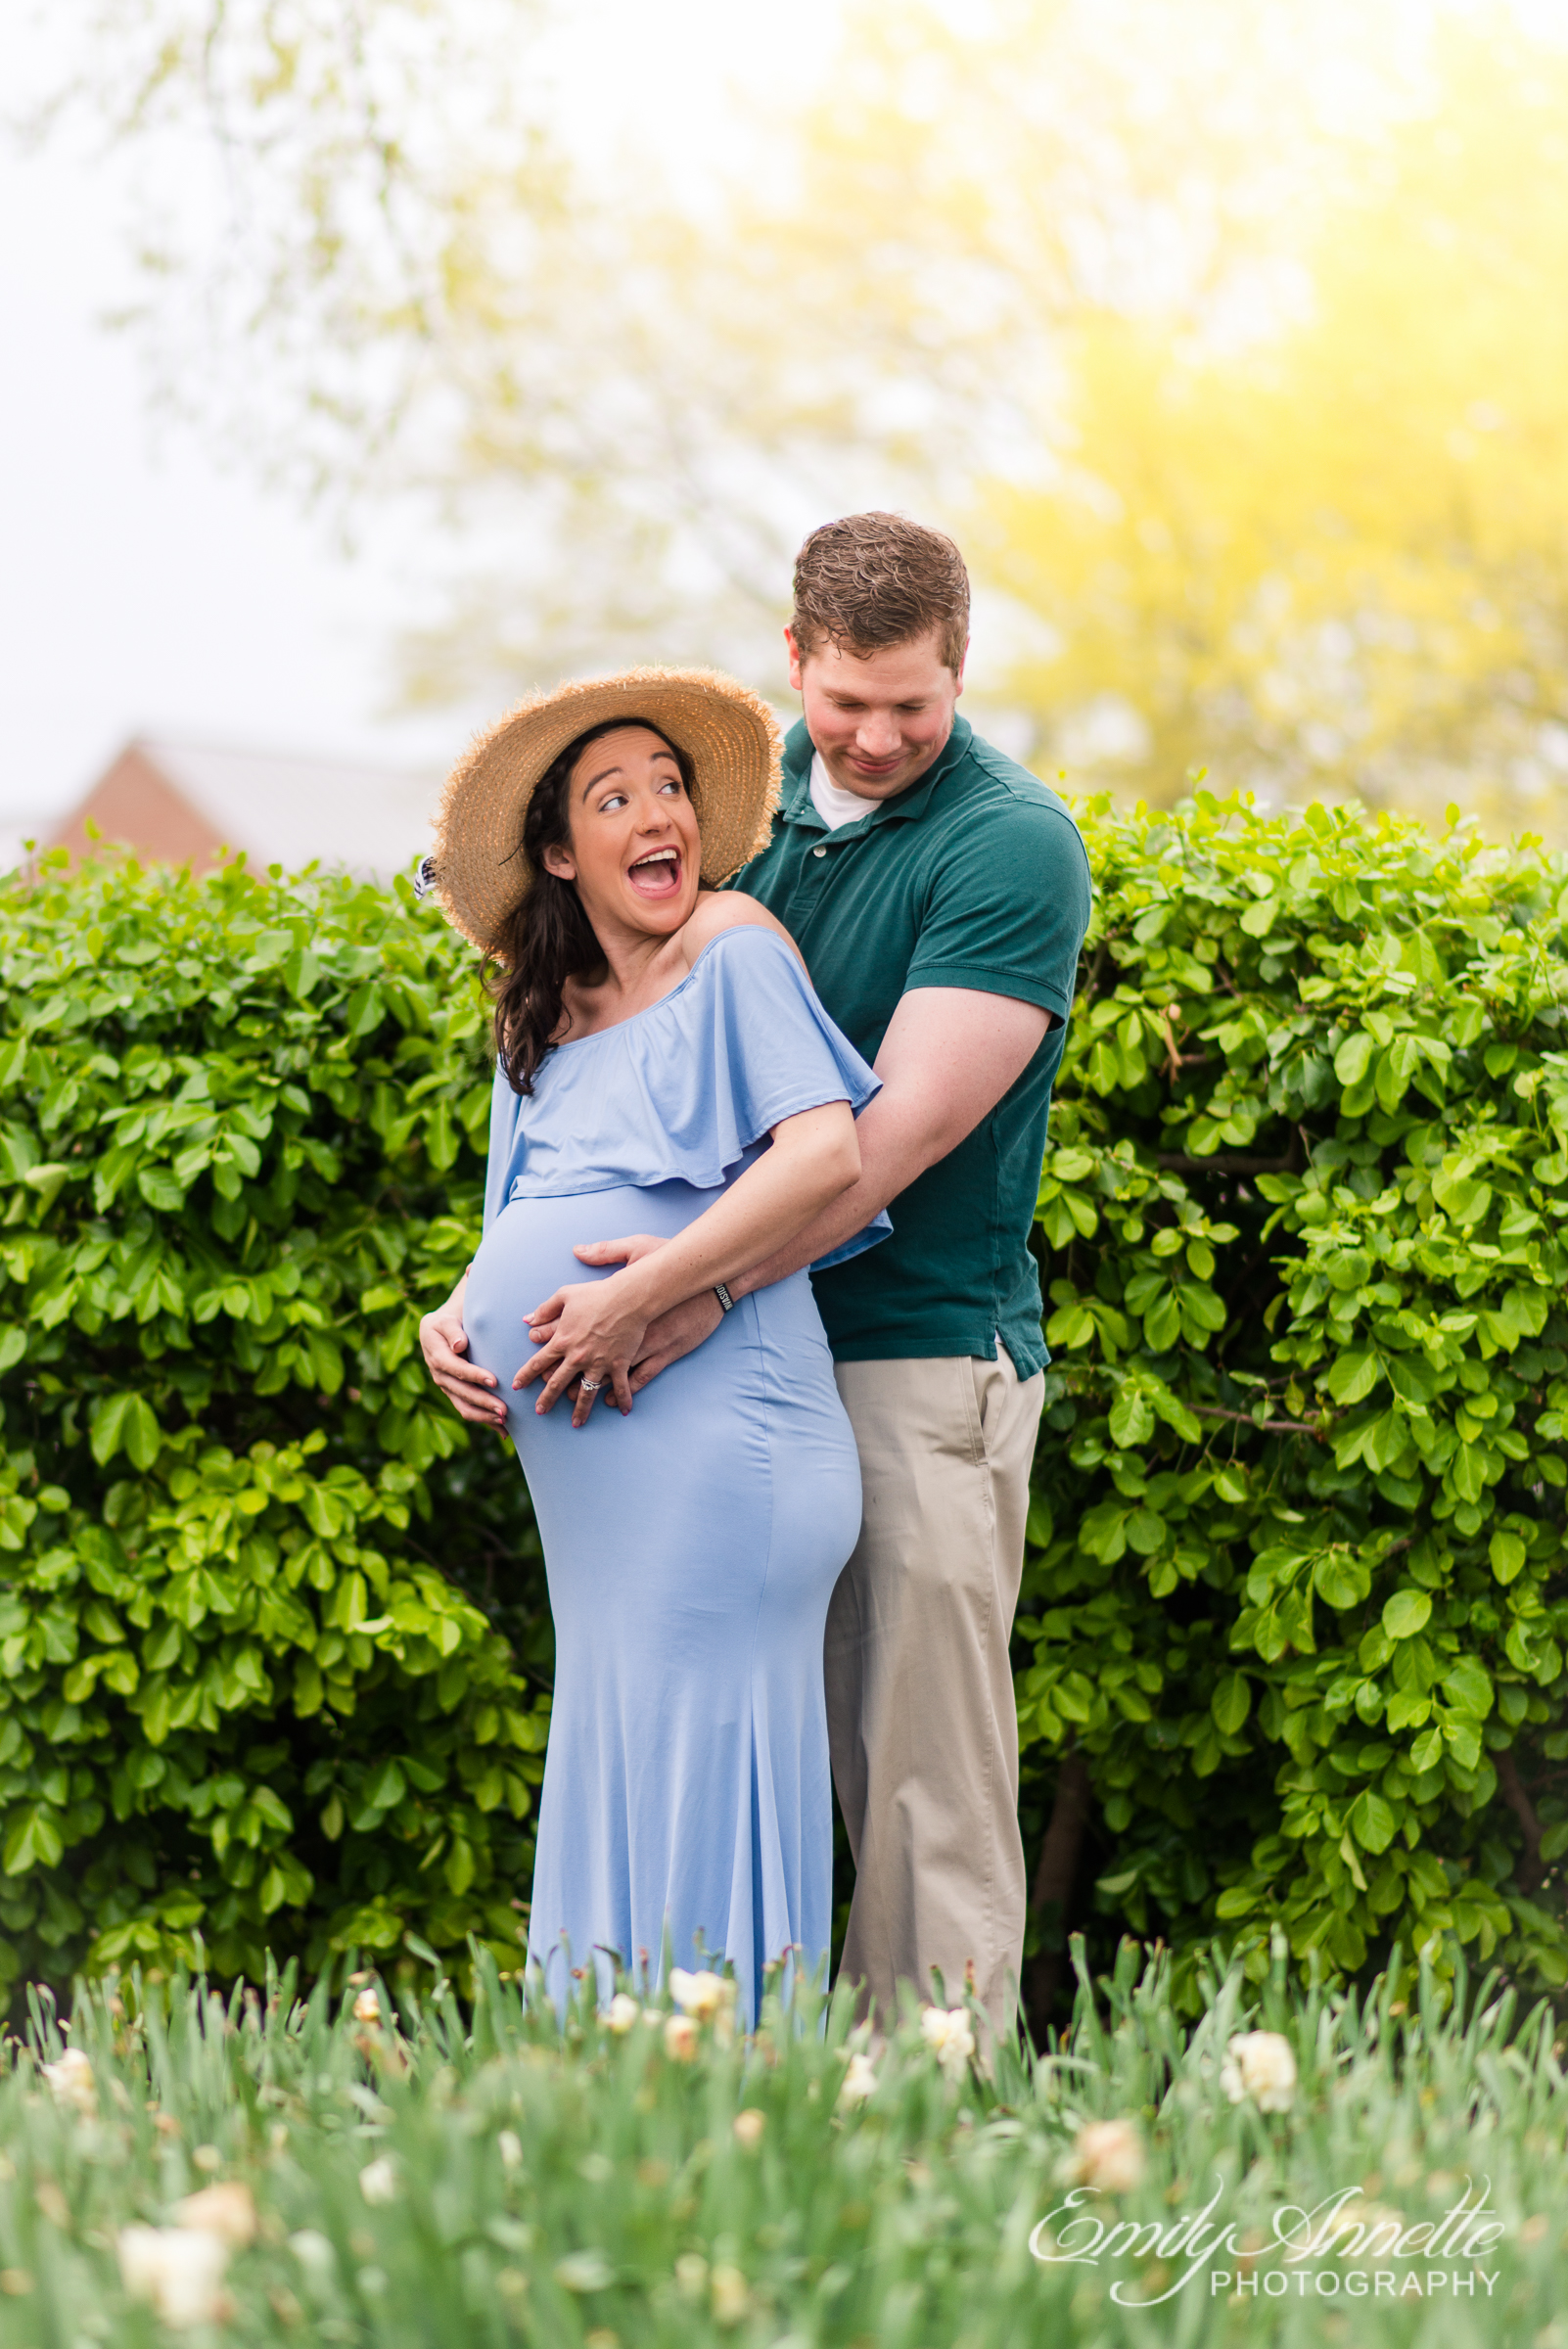 A pregnant woman poses for spring maternity photos at Waterfront Park in Old Town Alexandria wearing a romantic blue dress